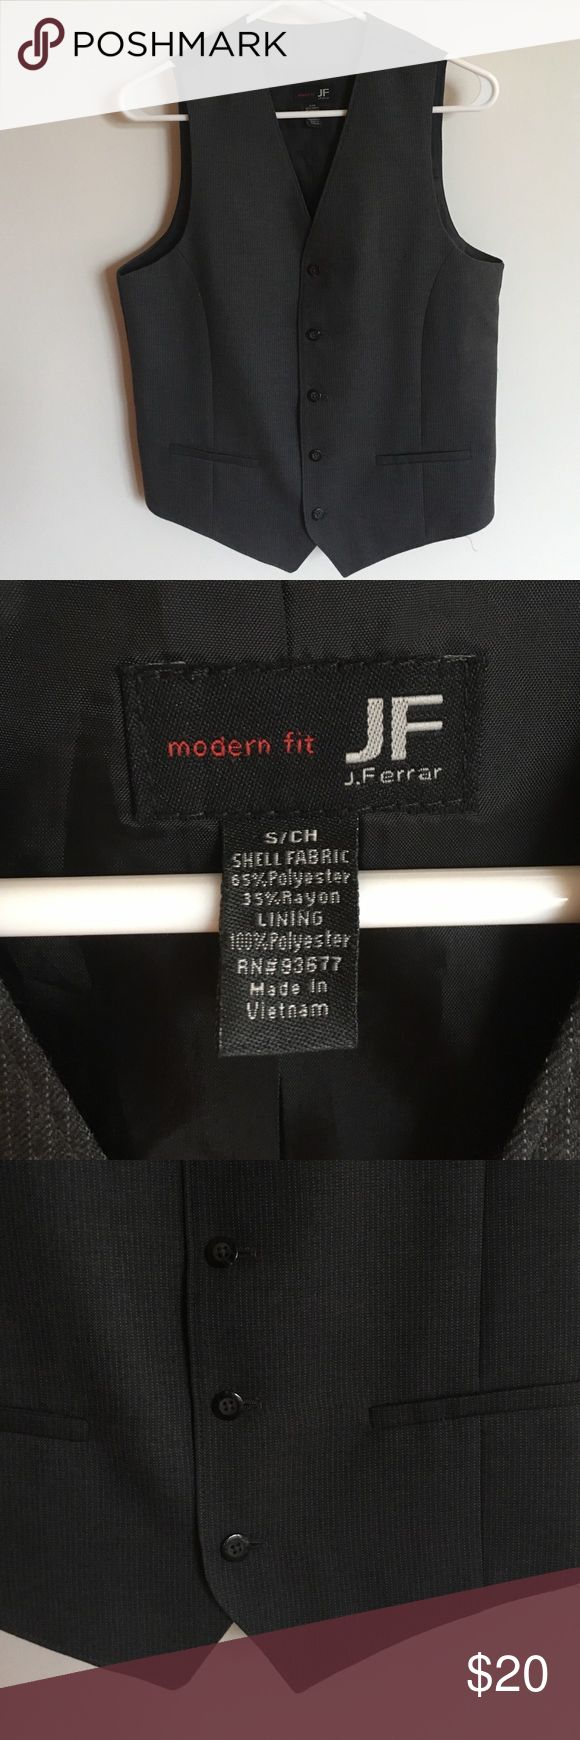 Pict j ferrar modern fit 1 - Mens Formal Vest Mens Gray Pinstriped Vest For Sale Worn Once And In Great Condition